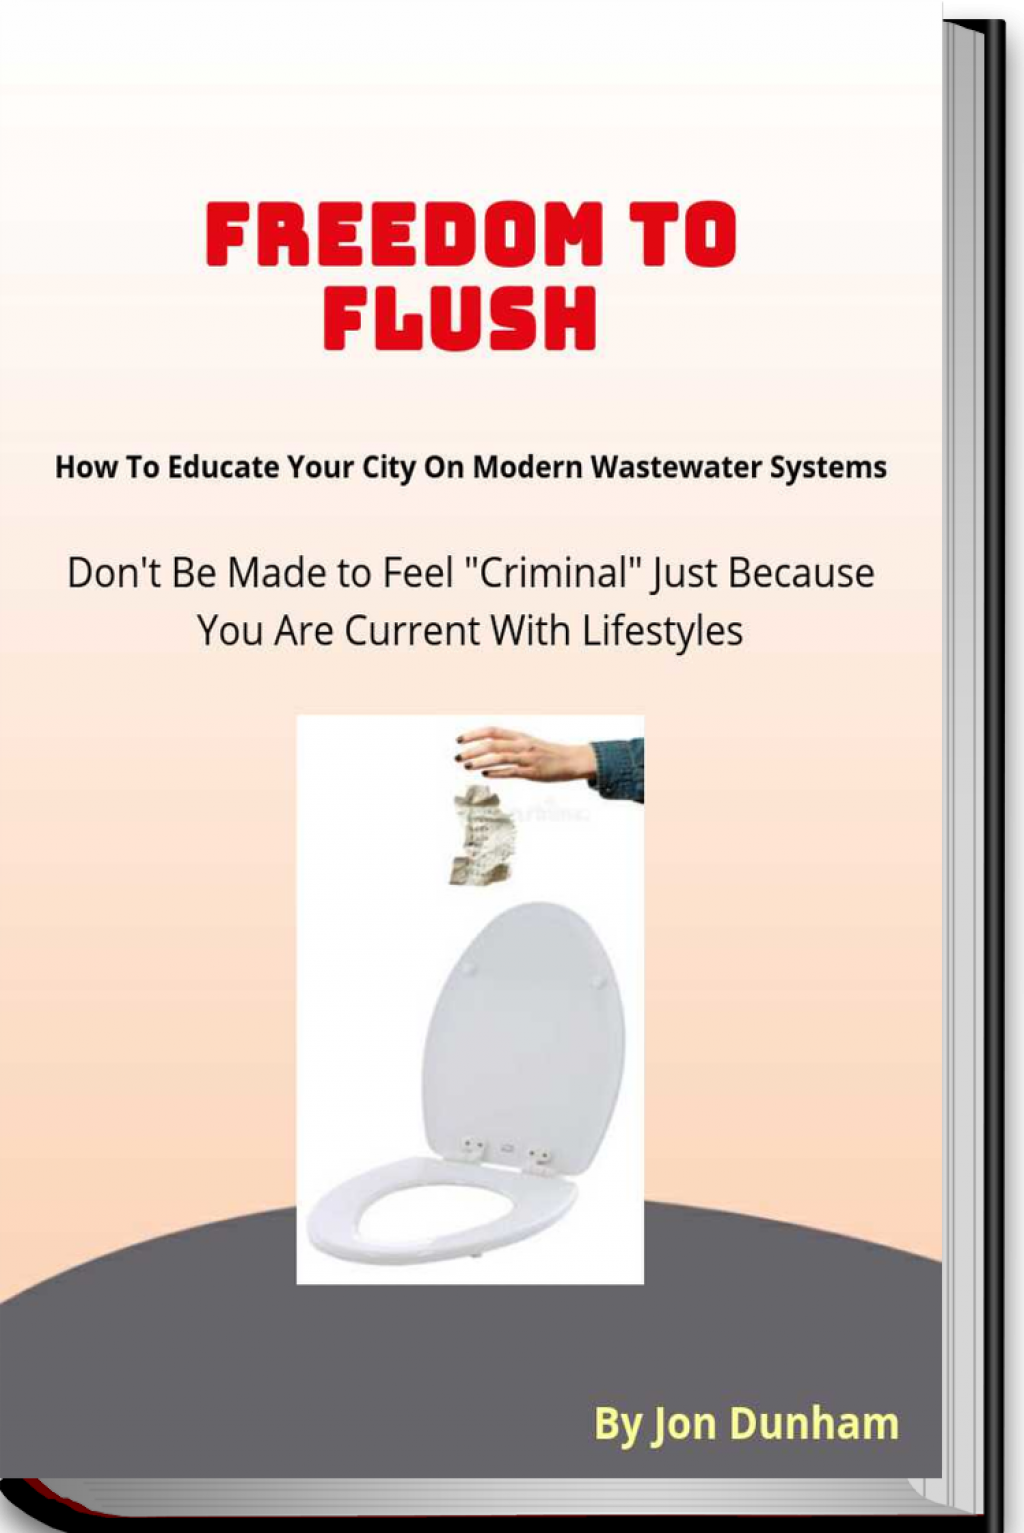 You are now free to flush